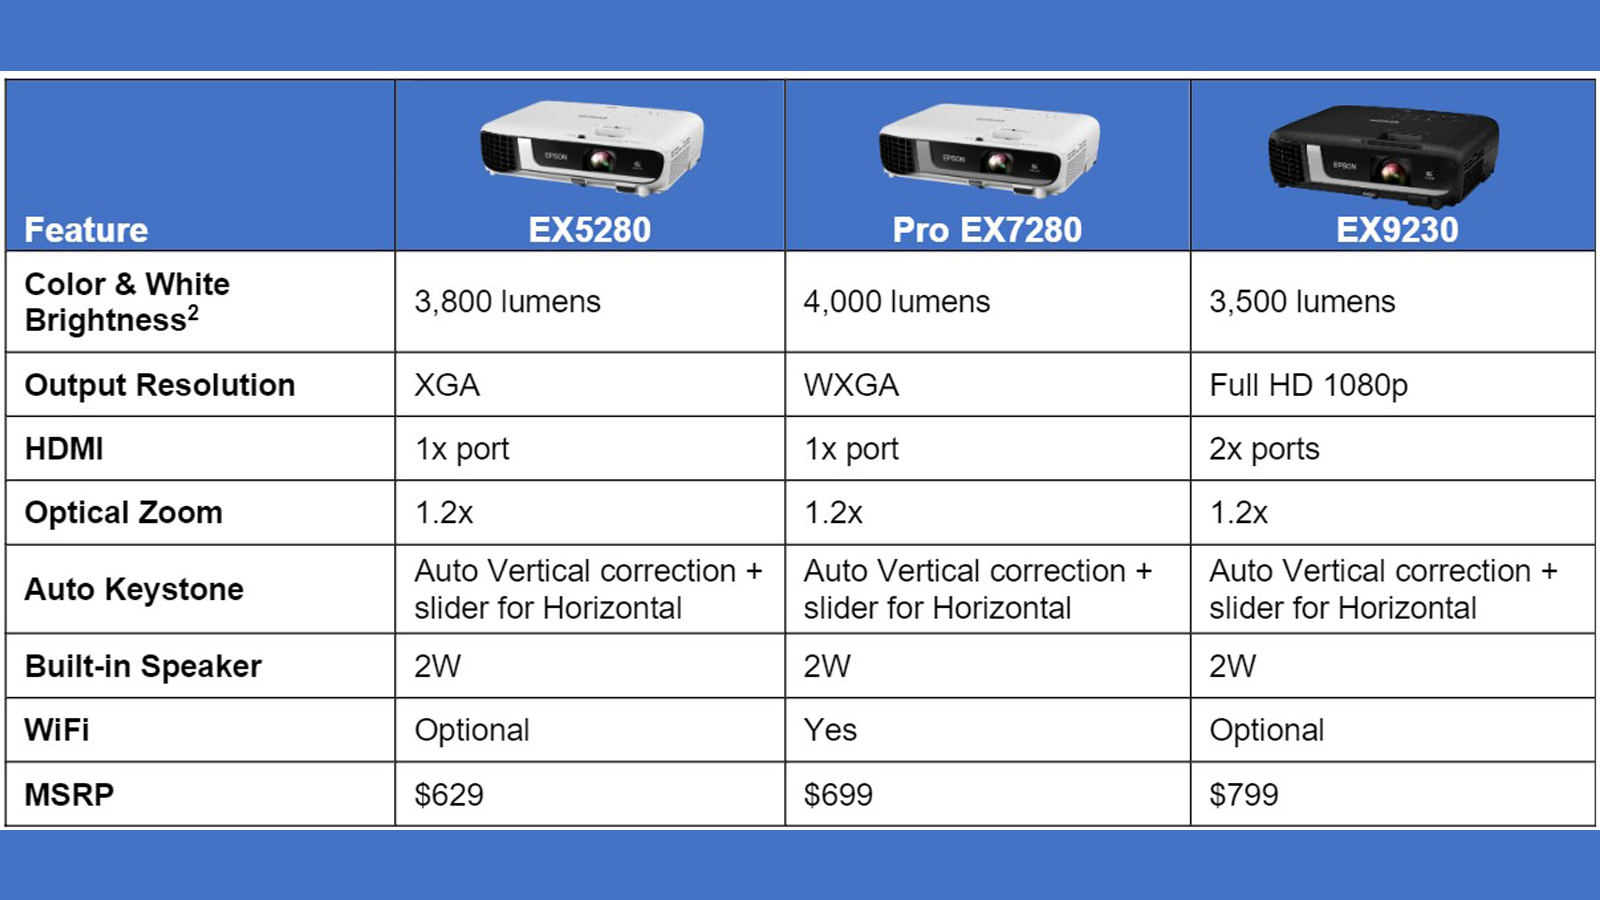 Specs for each of the three new Epson SMB projectors